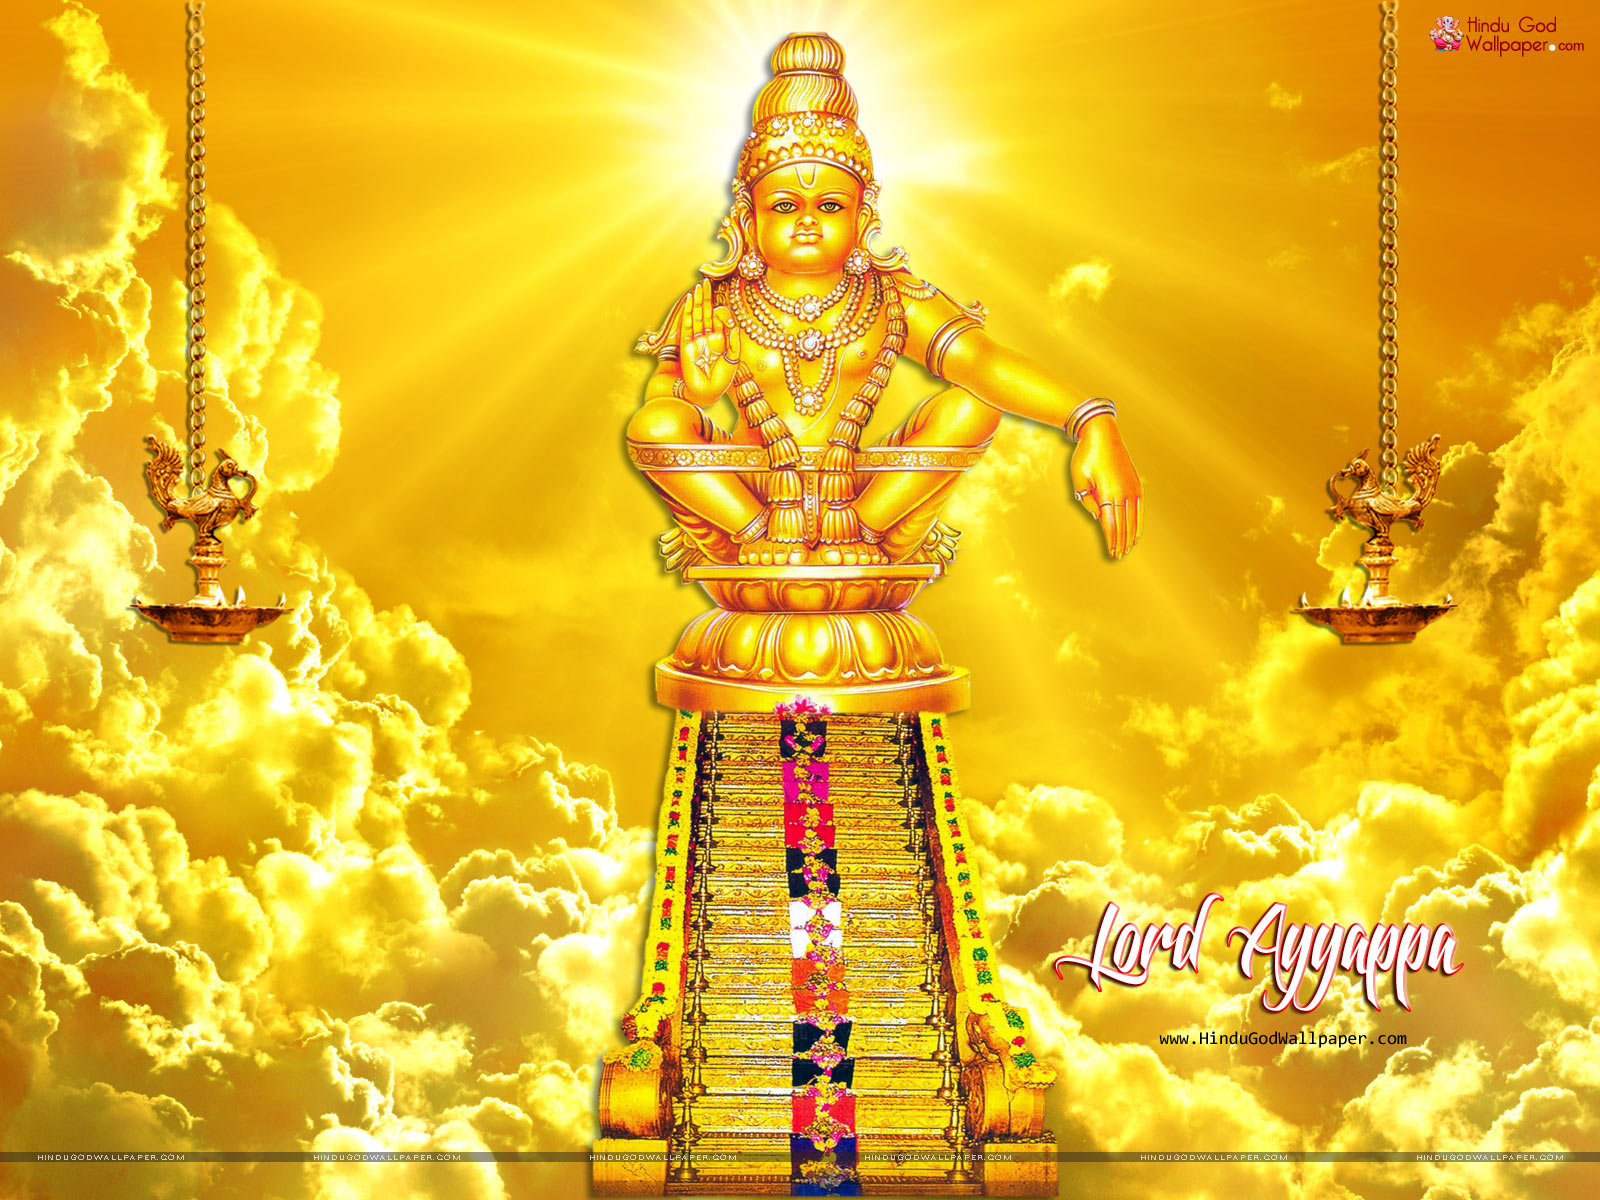 Ayyappa swamy wallpapers download latest mp3 songs | chainimage.